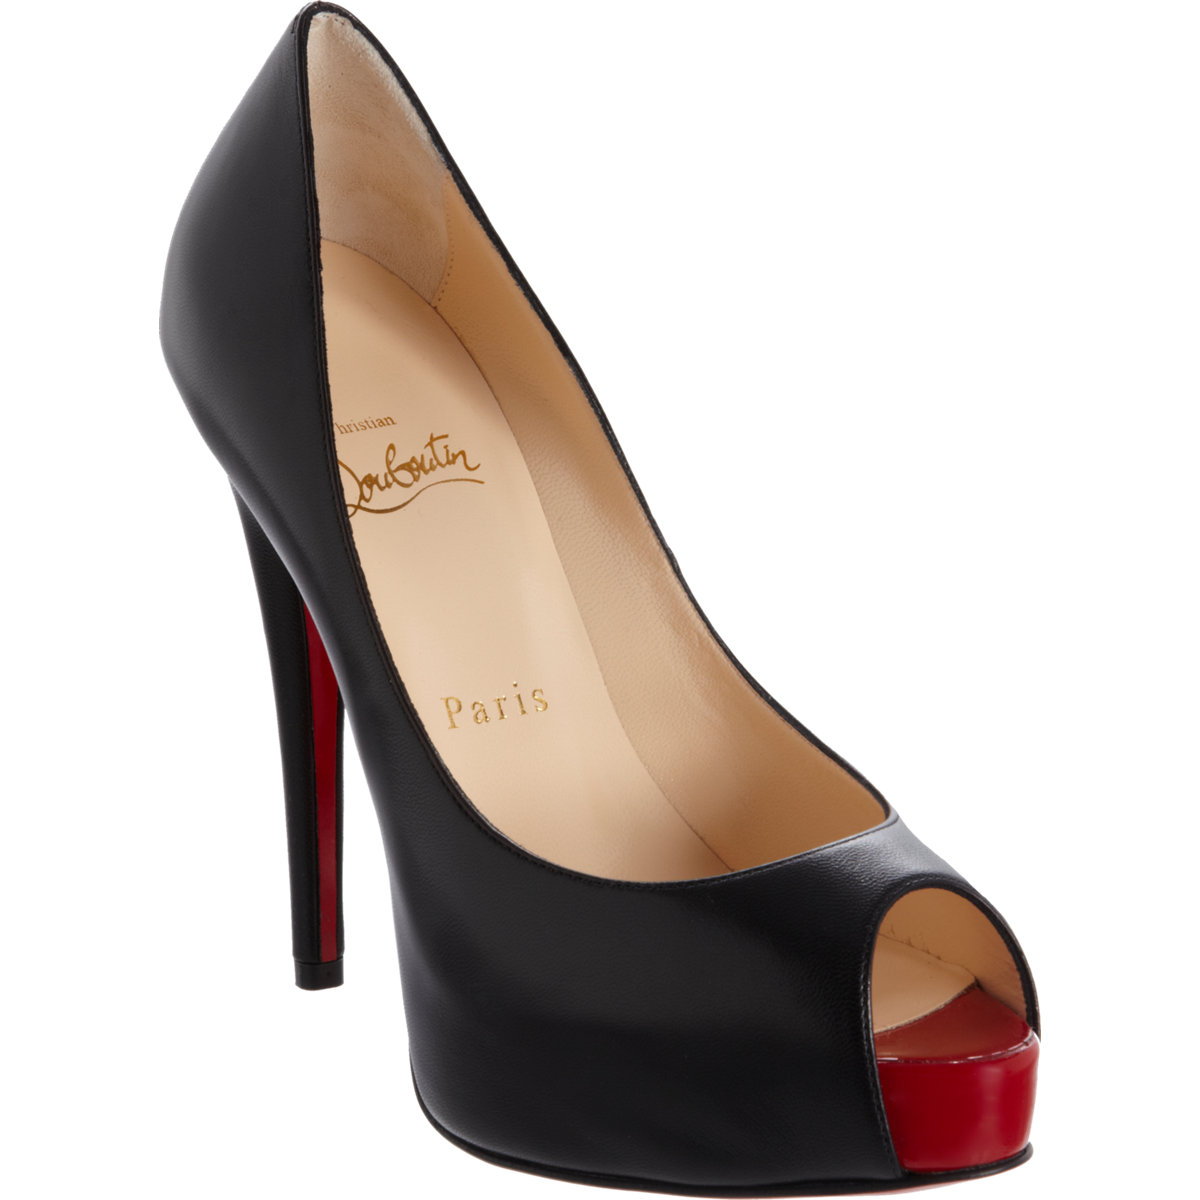 christian louboutin Christian louboutin shoes for sale buy pre-owned, authentic christian louboutin sneakers, heels, and more for up to 70% off at yoogi's closet.